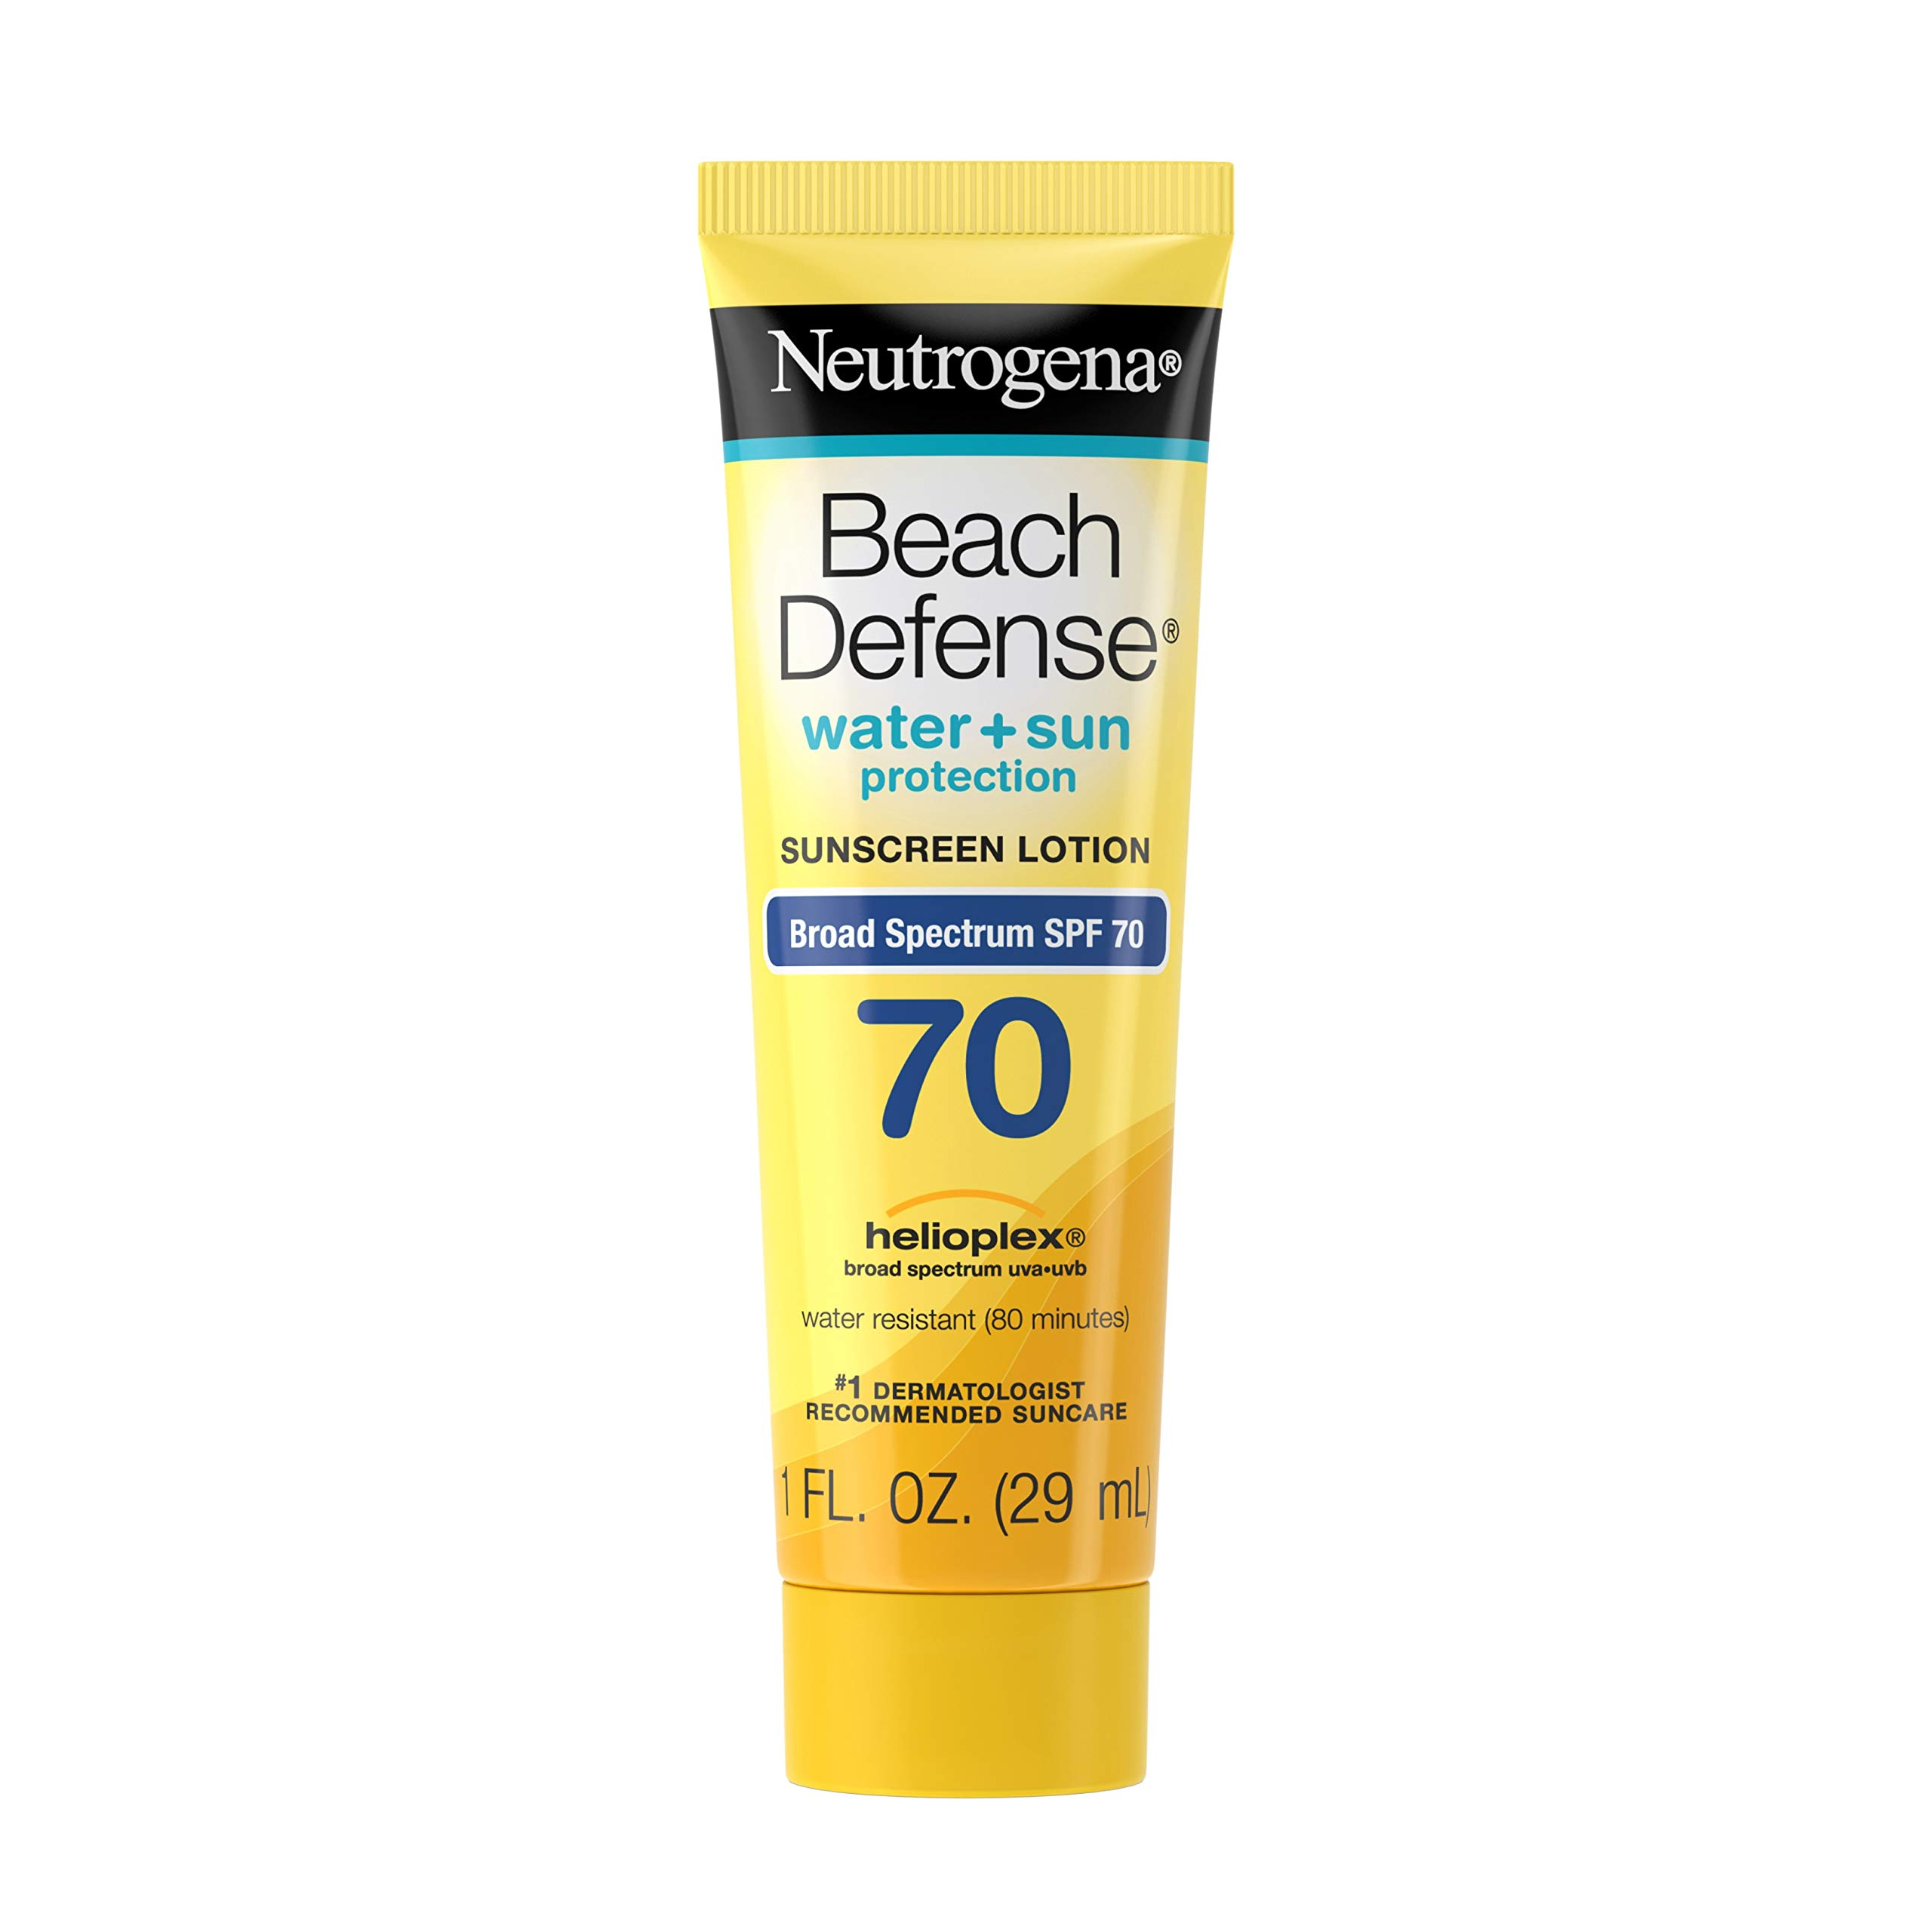 Neutrogena Beach Defense Water Resistant Sunscreen Body Lotion with Broad Spectrum SPF 70, Oil-Free and Fast-Absorbing, 1 oz